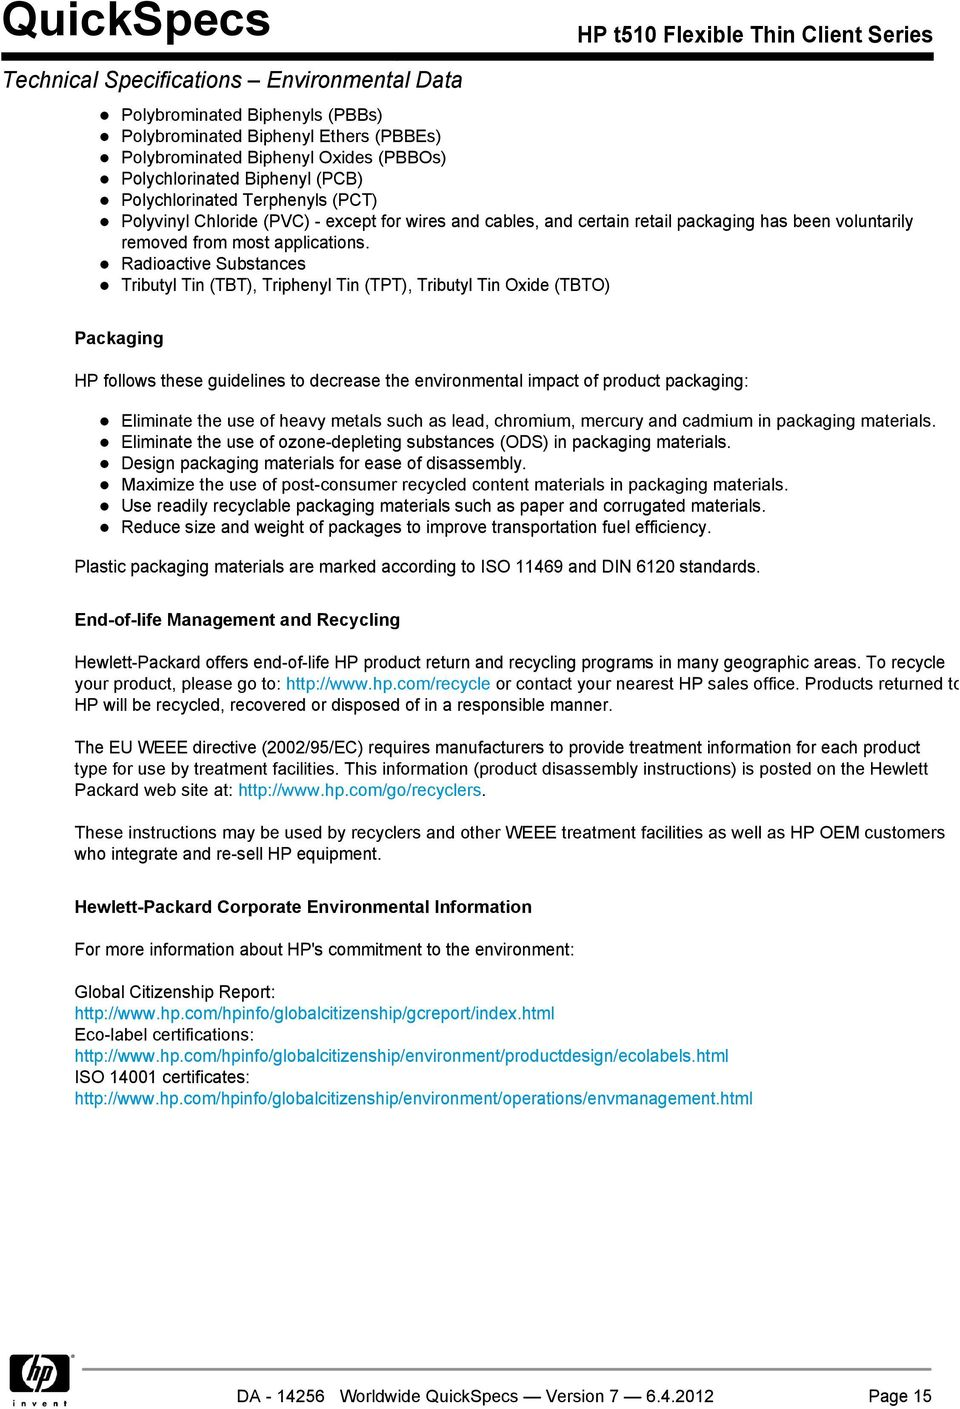 HP t510 Flexible Thin Client Series Overview - PDF